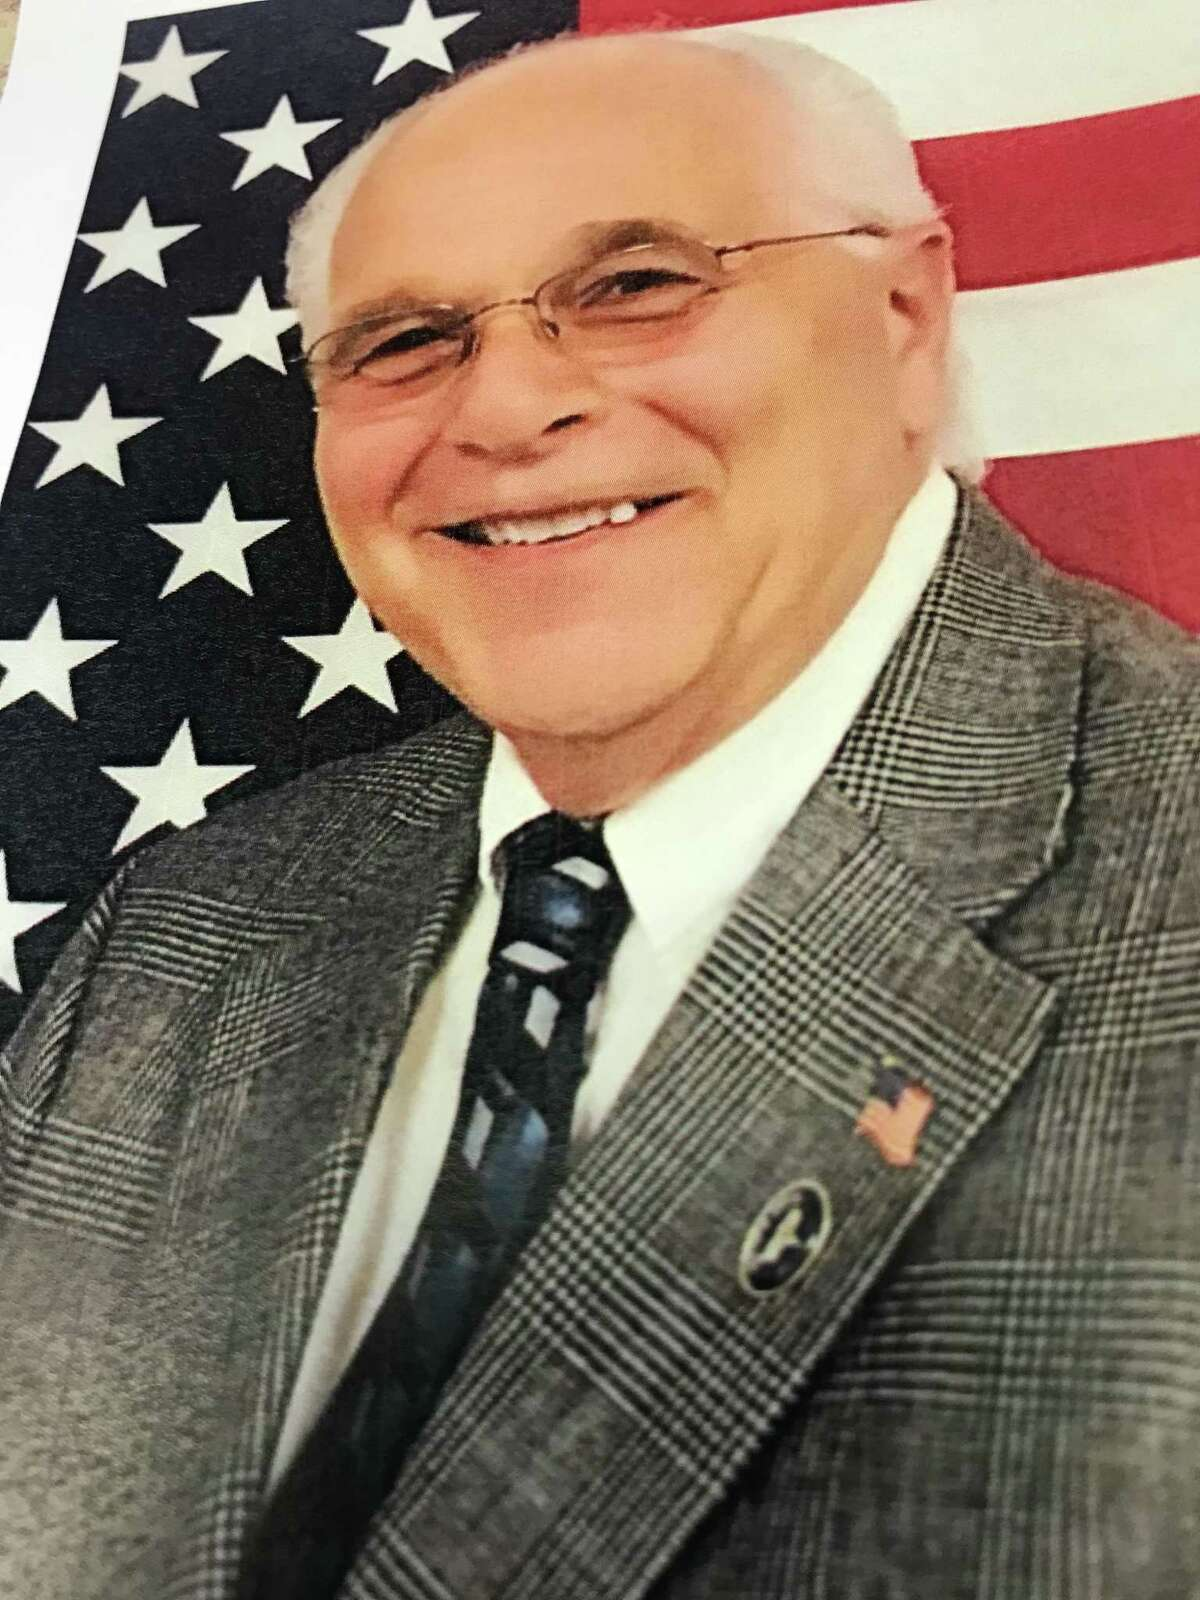 East Haven small businessman Sal Maltese announced Thursday, April 18, 2019, that he will run for mayor for a third time, this time as a Republican. Maltese previously has run against Mayor Joseph Maturo Jr. as an independent in 2015 and a Democrat in 2017, after failing to get the 2015 Republican nomination.